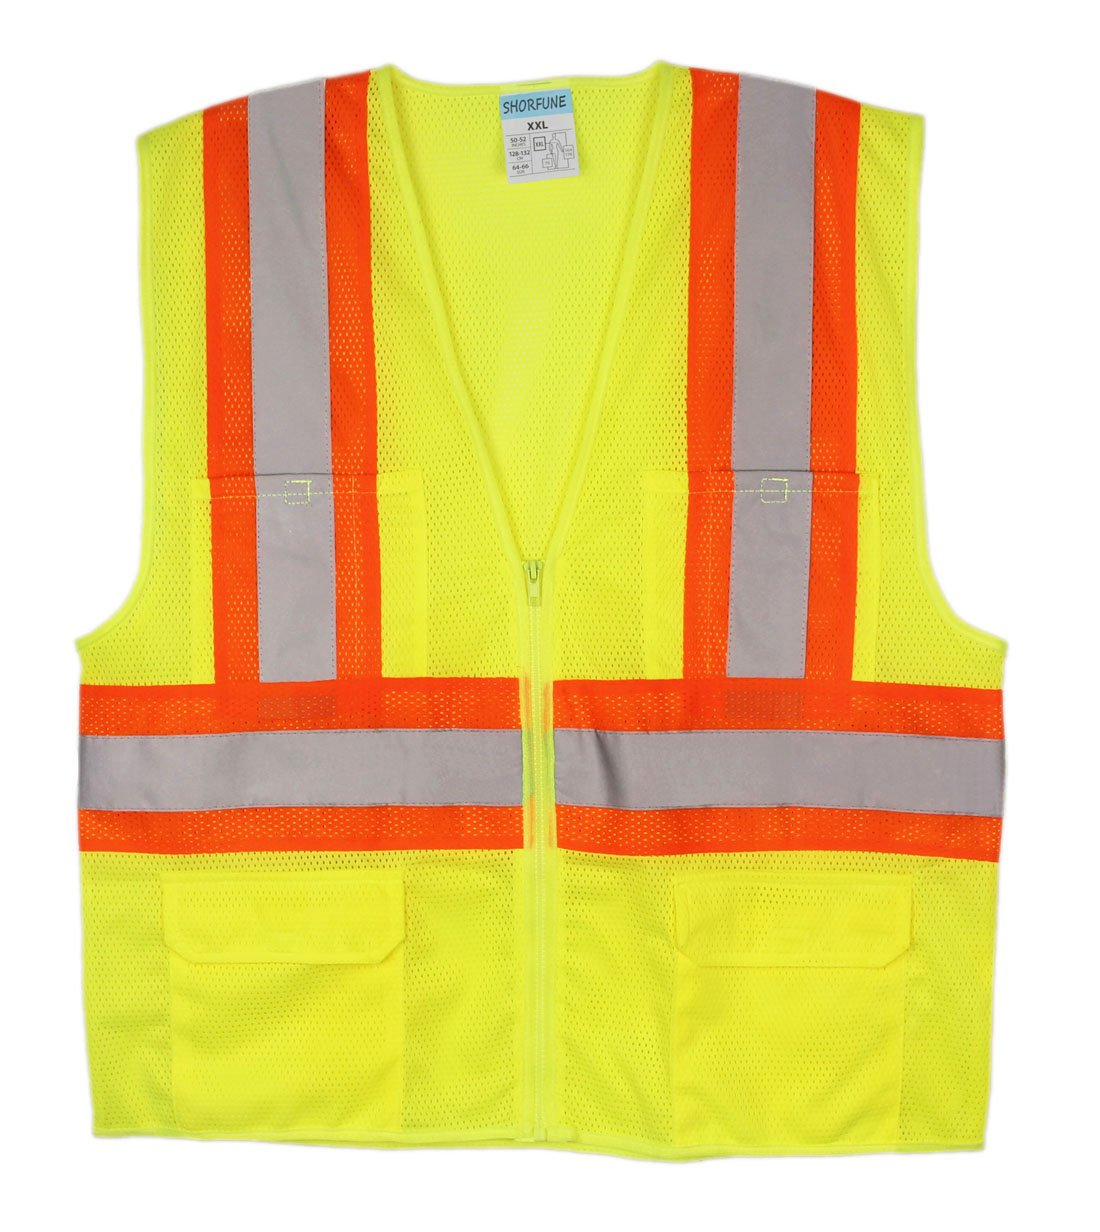 SHORFUNE 1103U High Visibility Reflective Safety Vest with Pockets and Zipper, Breathable Mesh, ANSI/ISEA Standard, Neon Yellow, XXL